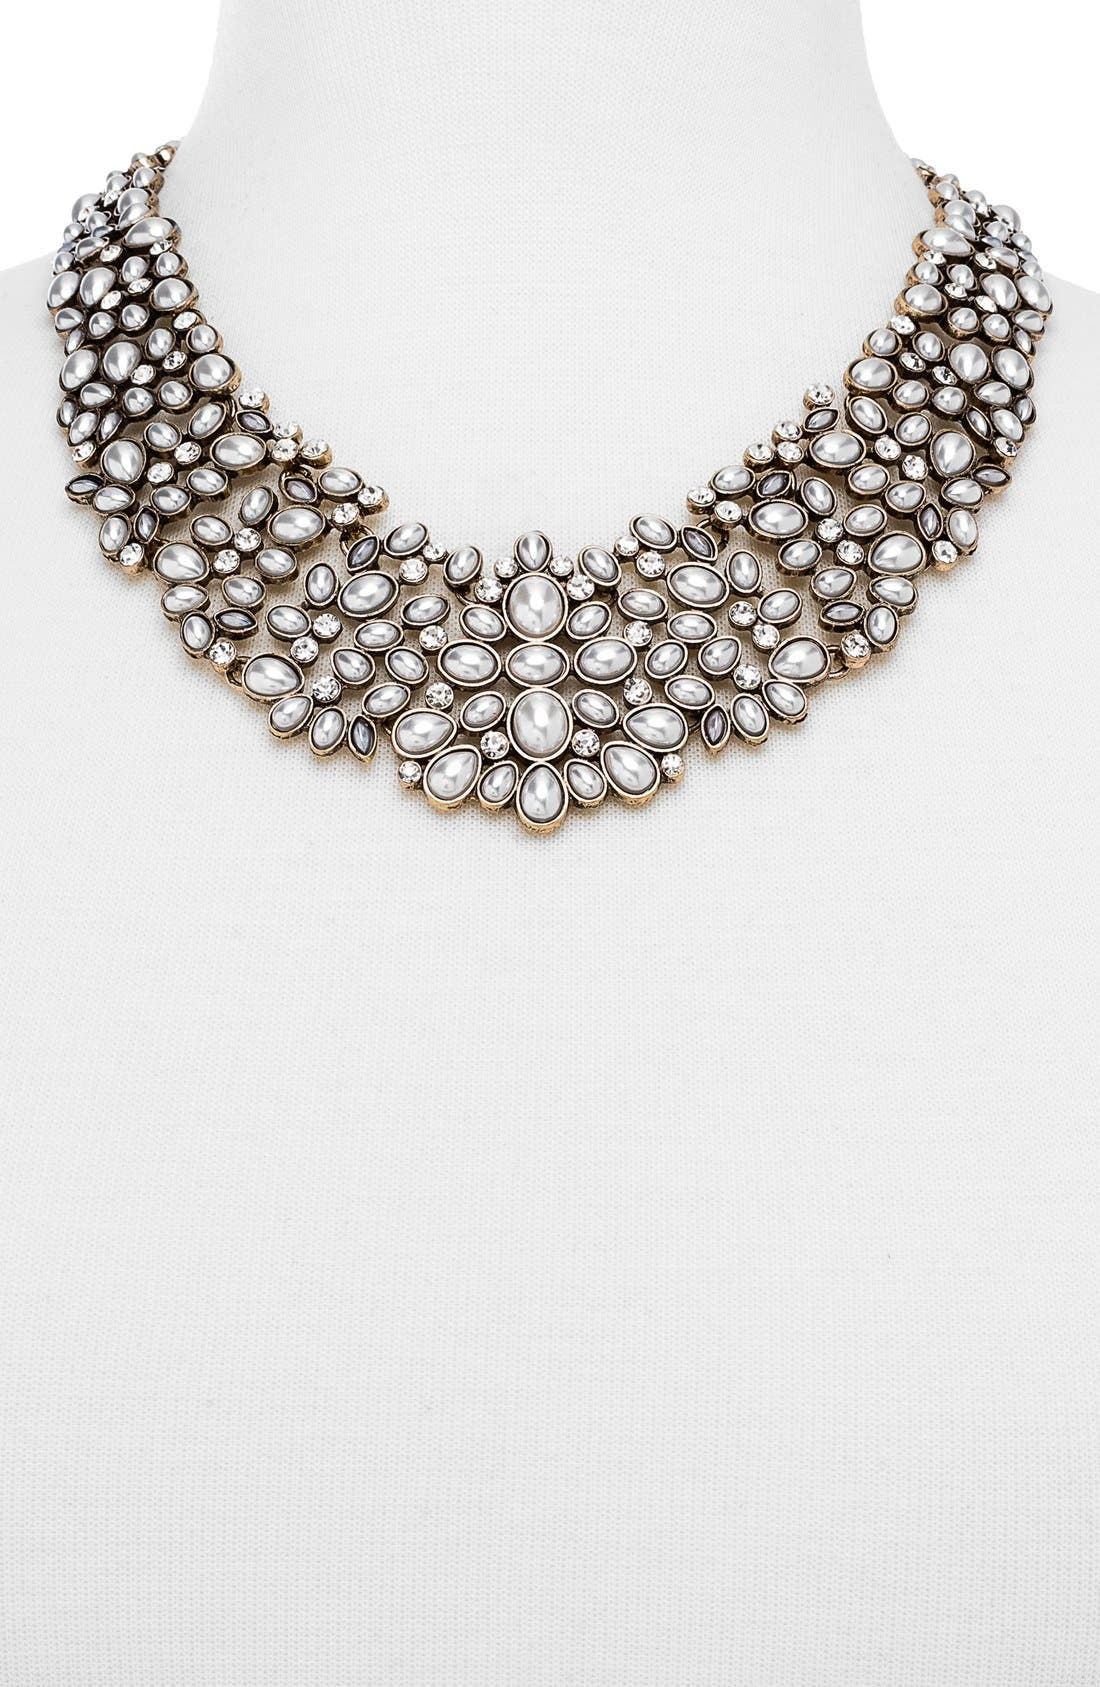 'Kew' Crystal Collar Necklace,                             Alternate thumbnail 7, color,                             PEARL/ GOLD